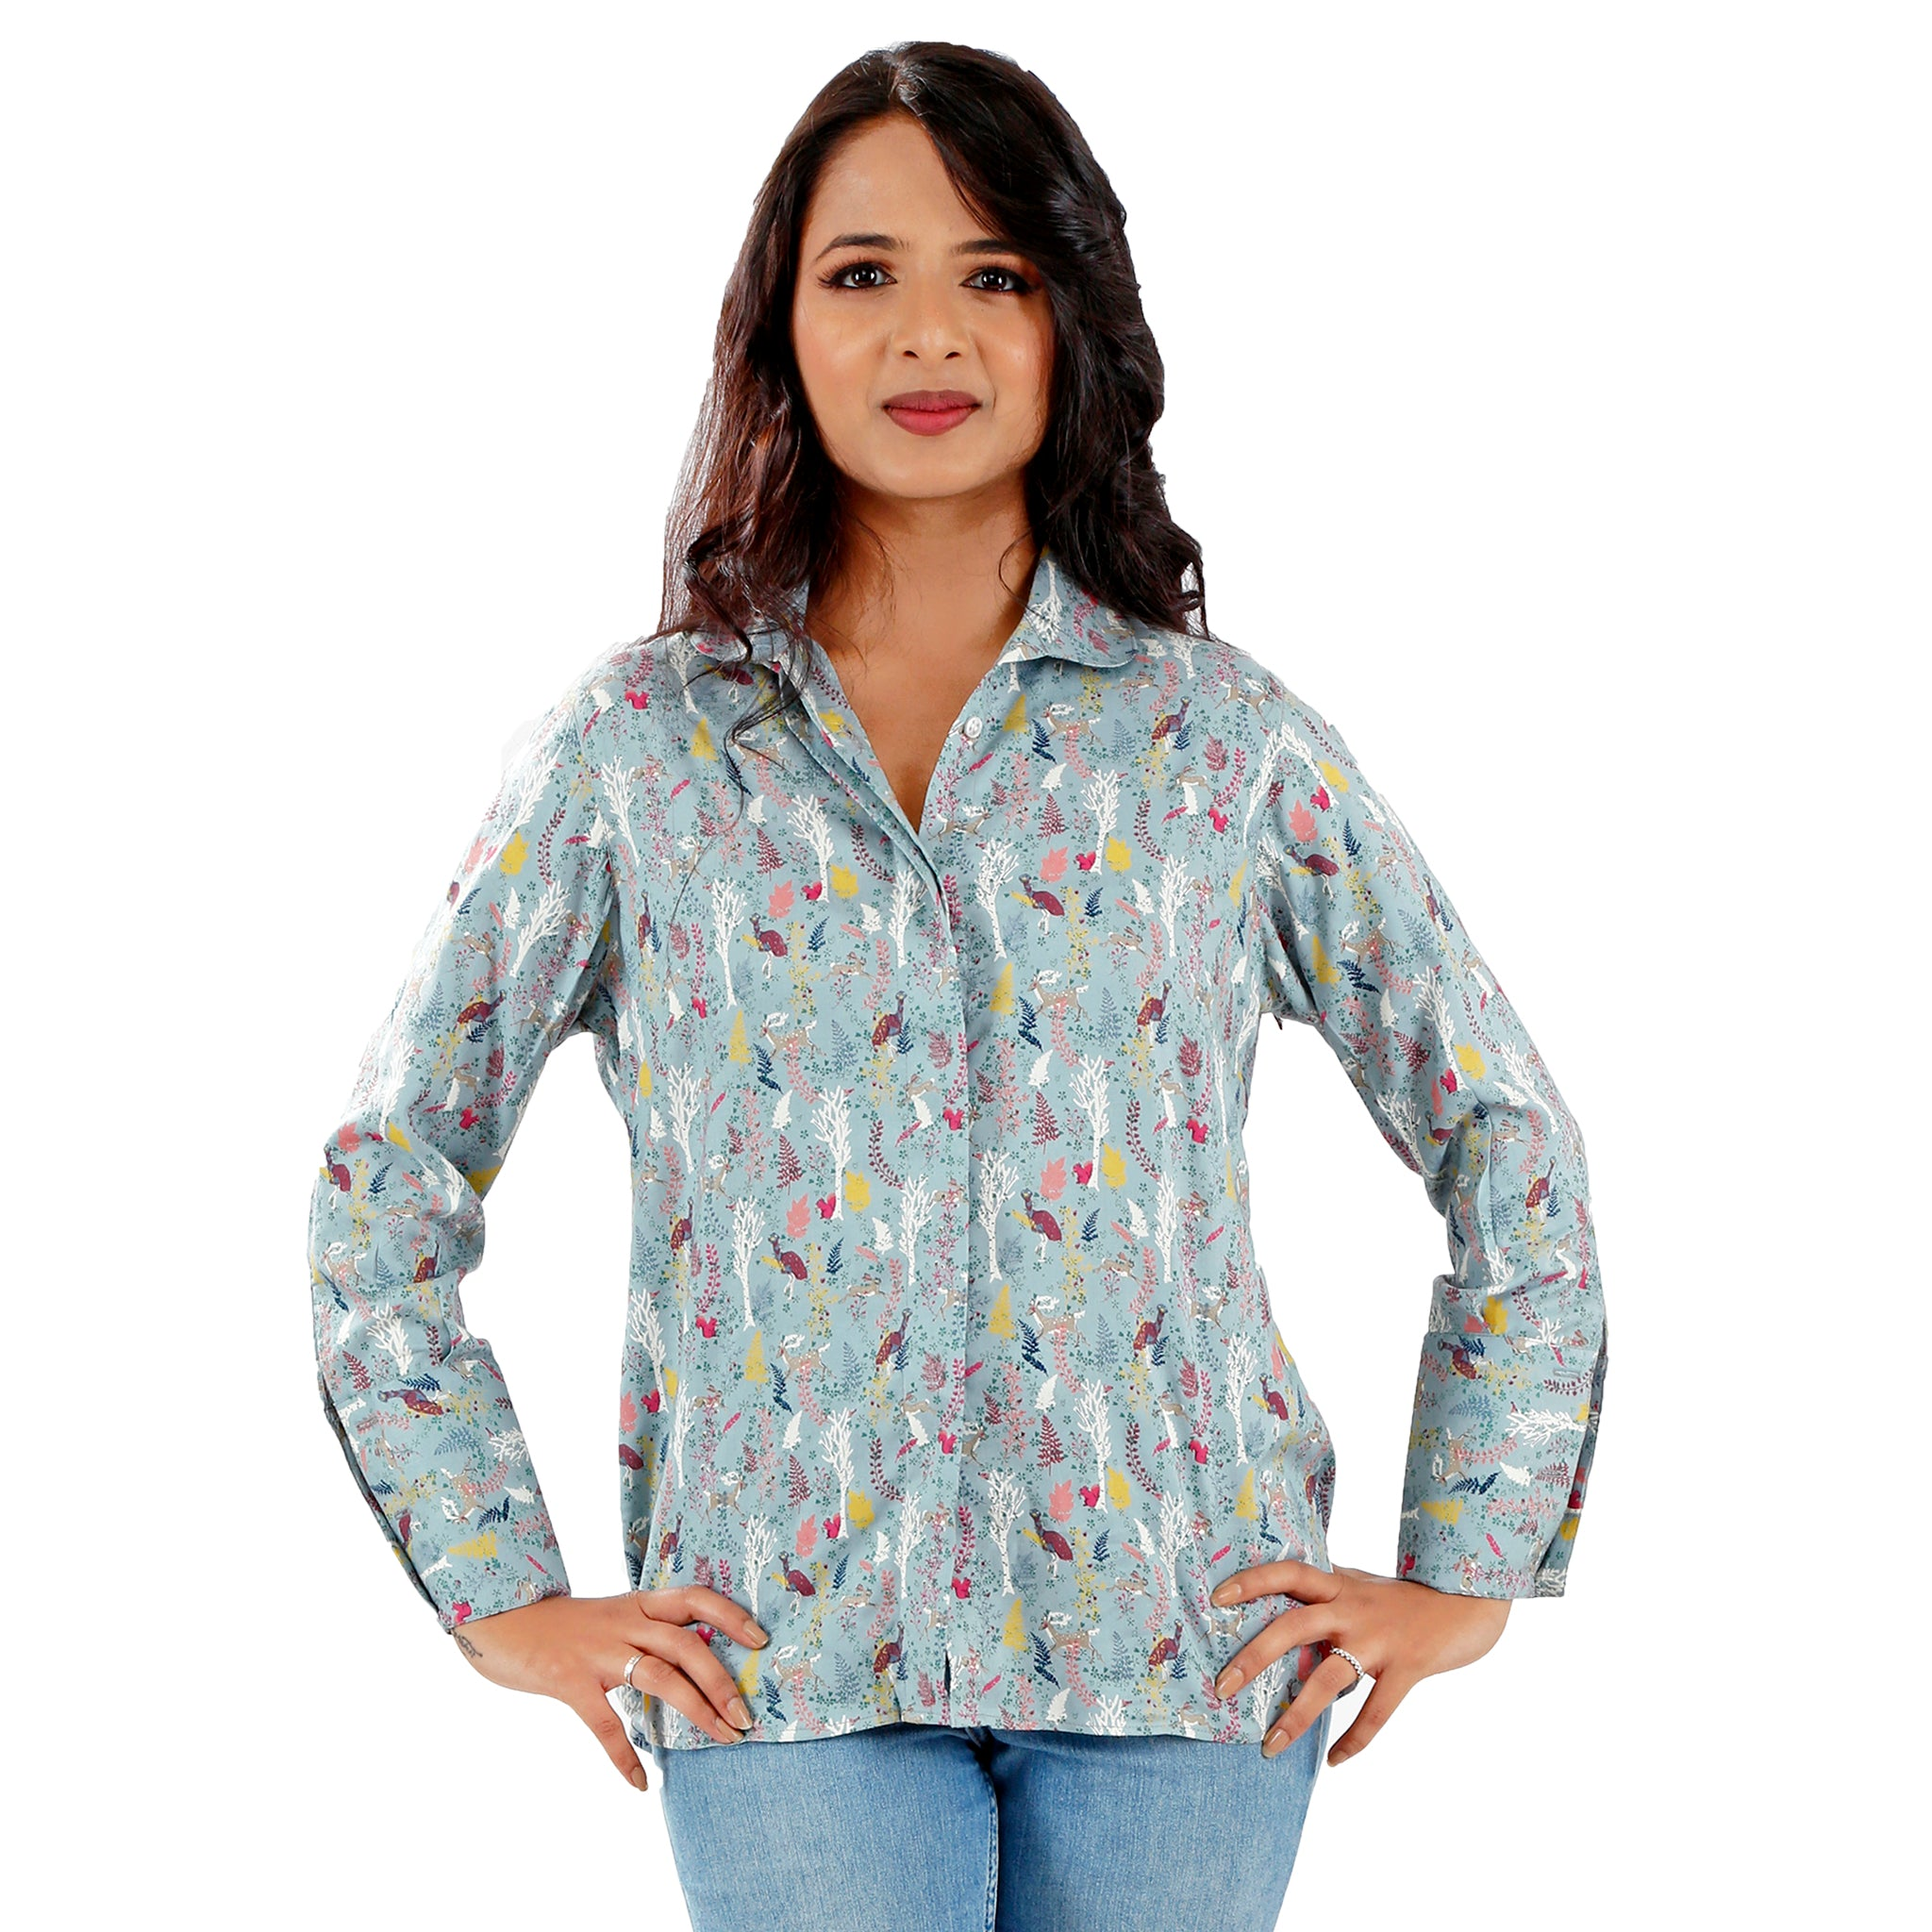 peacock print casual top for women in teal blue